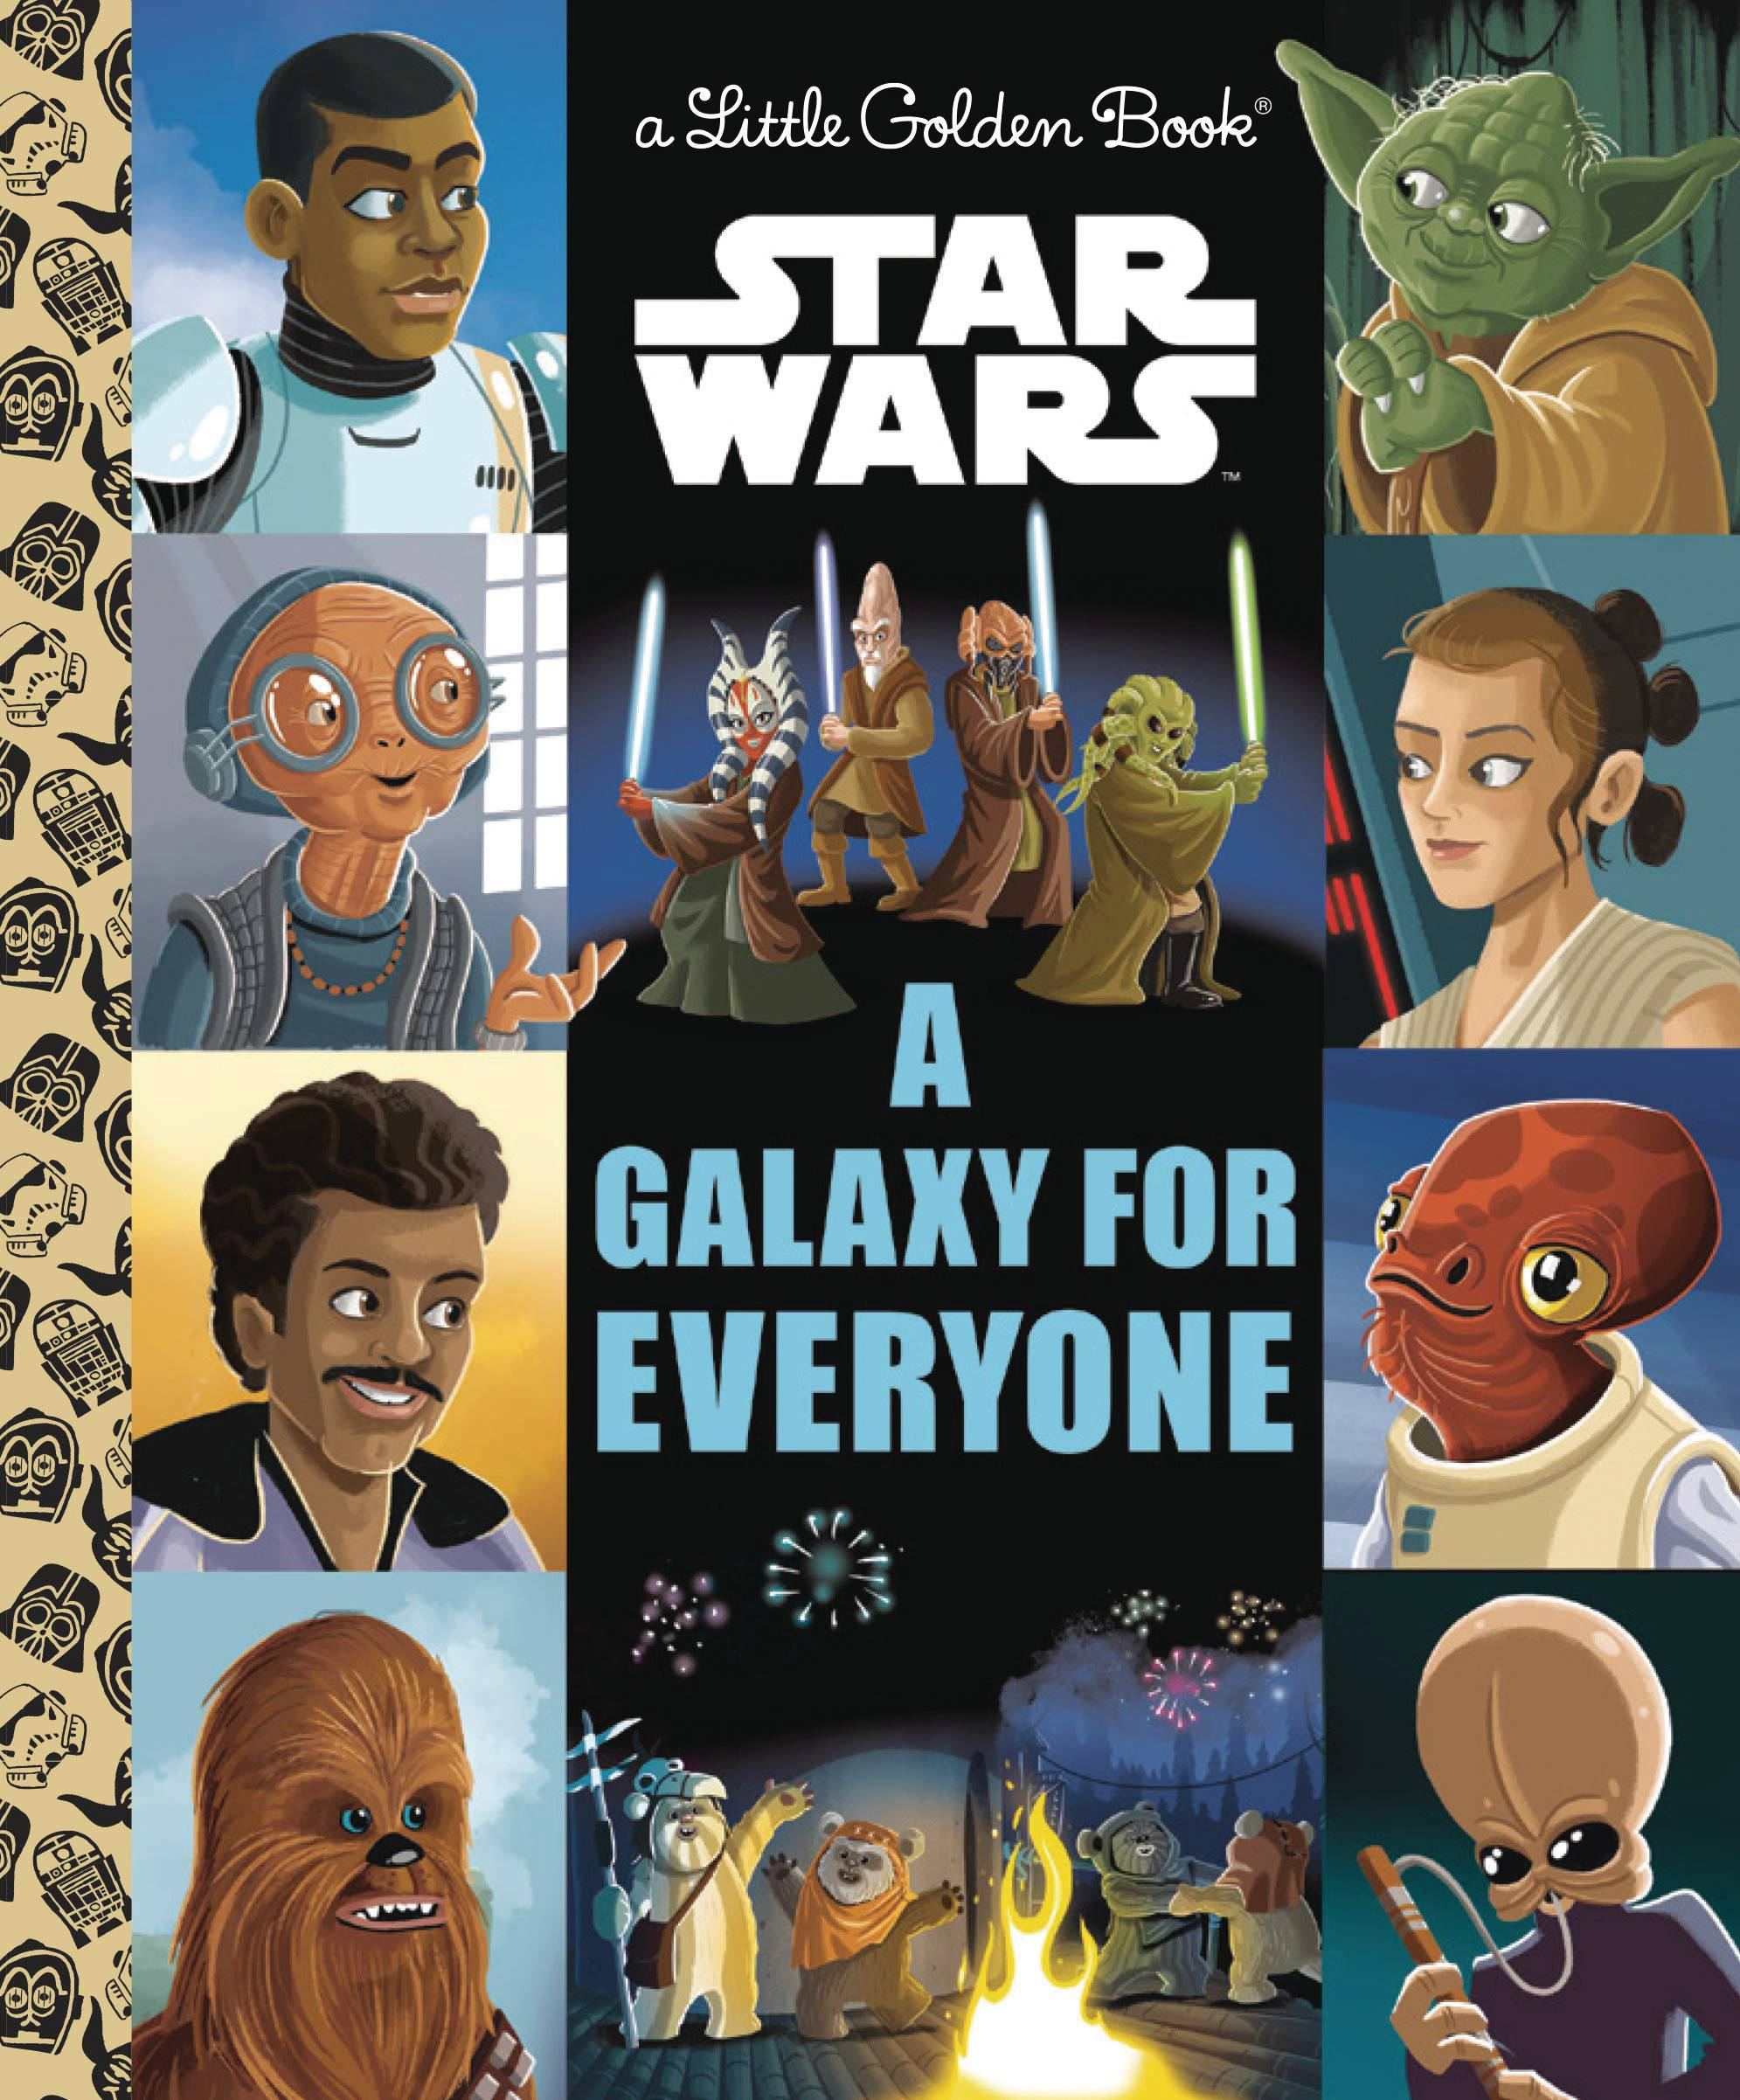 STAR WARS GALAXY OF HOPE LITTLE GOLDEN BOOK